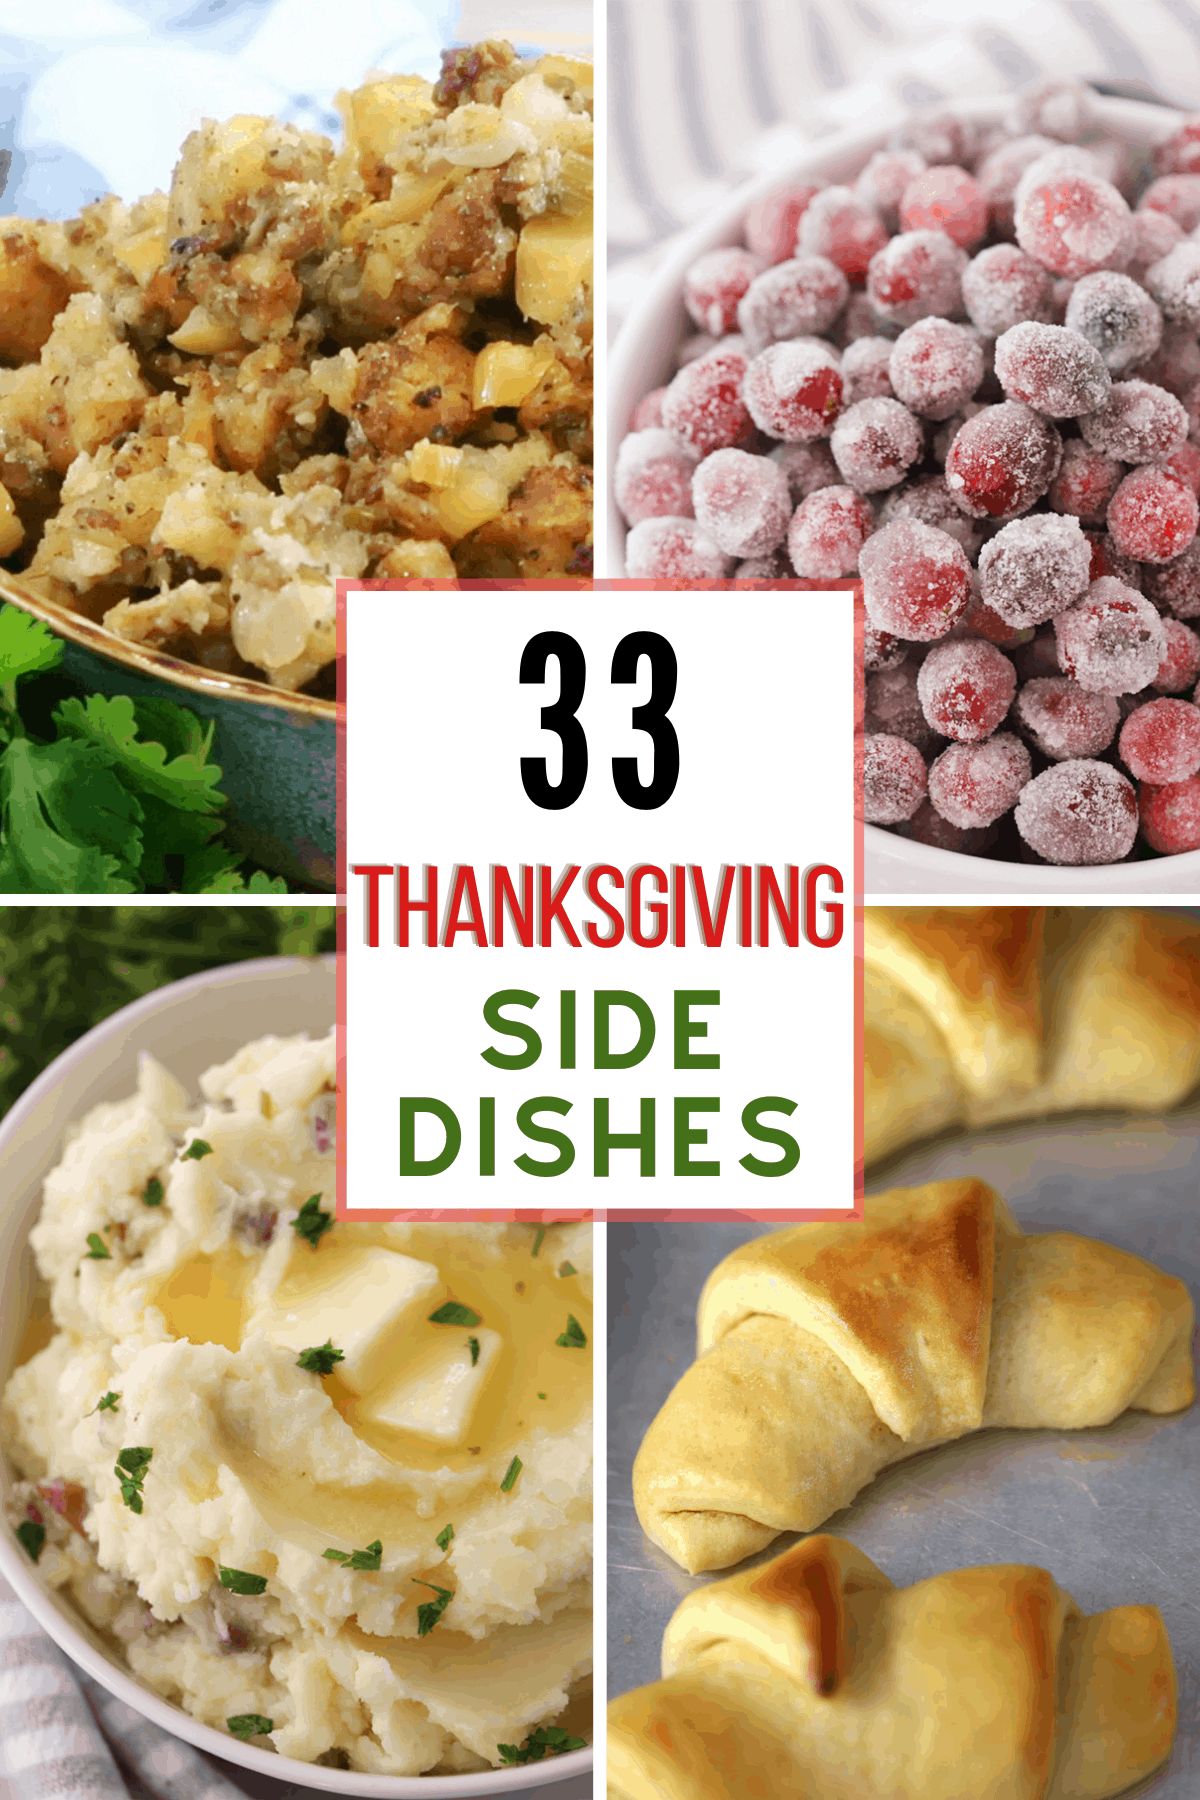 thanksgiving side dishes, mashed potatoes, stuffing, cranberries and homemade dinner rolls.